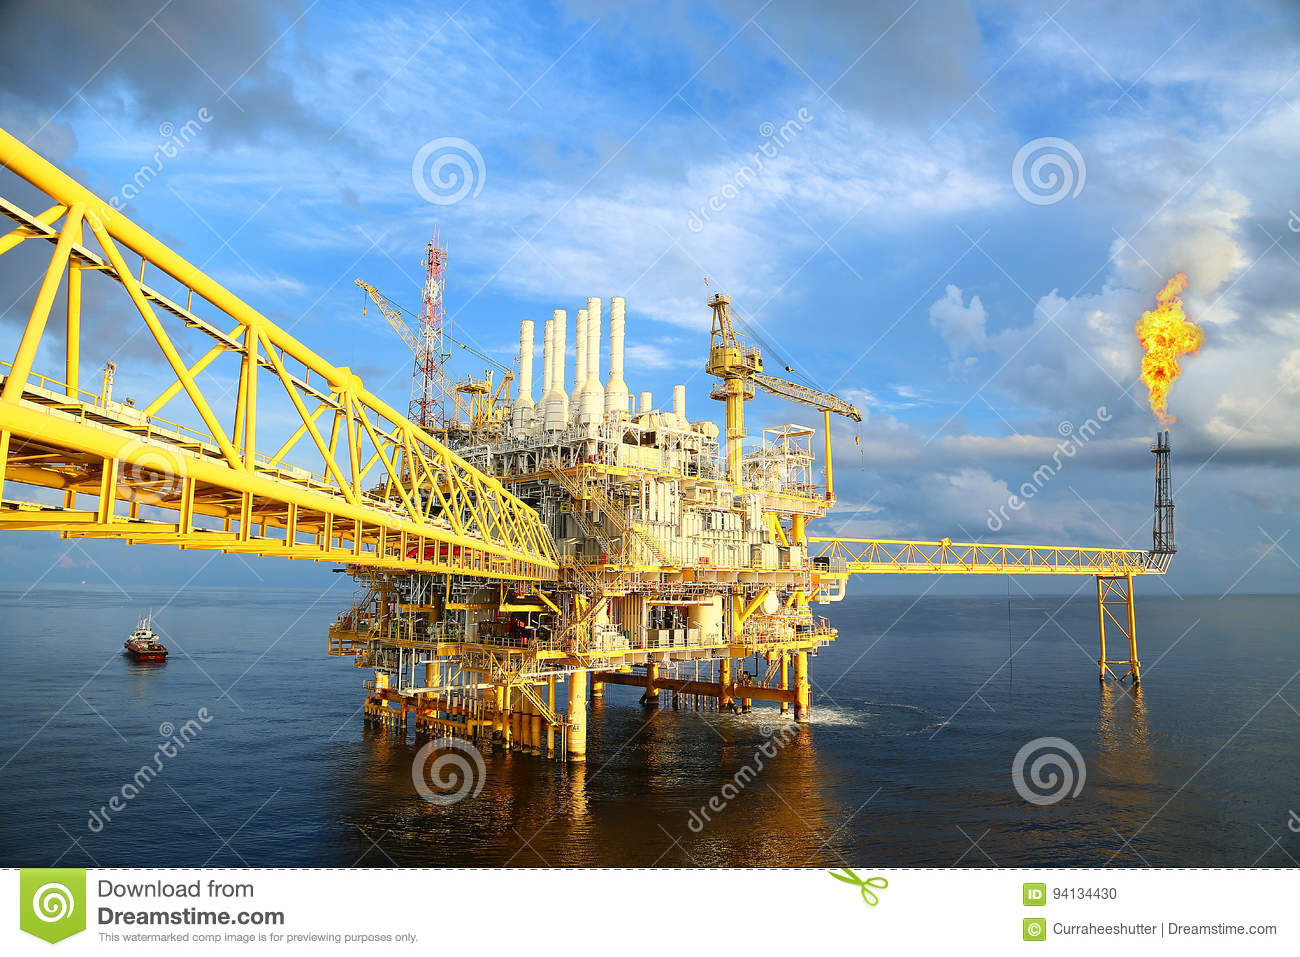 Offshore construction platform for production oil and gas. Oil and gas industry and hard work industry. Production platform